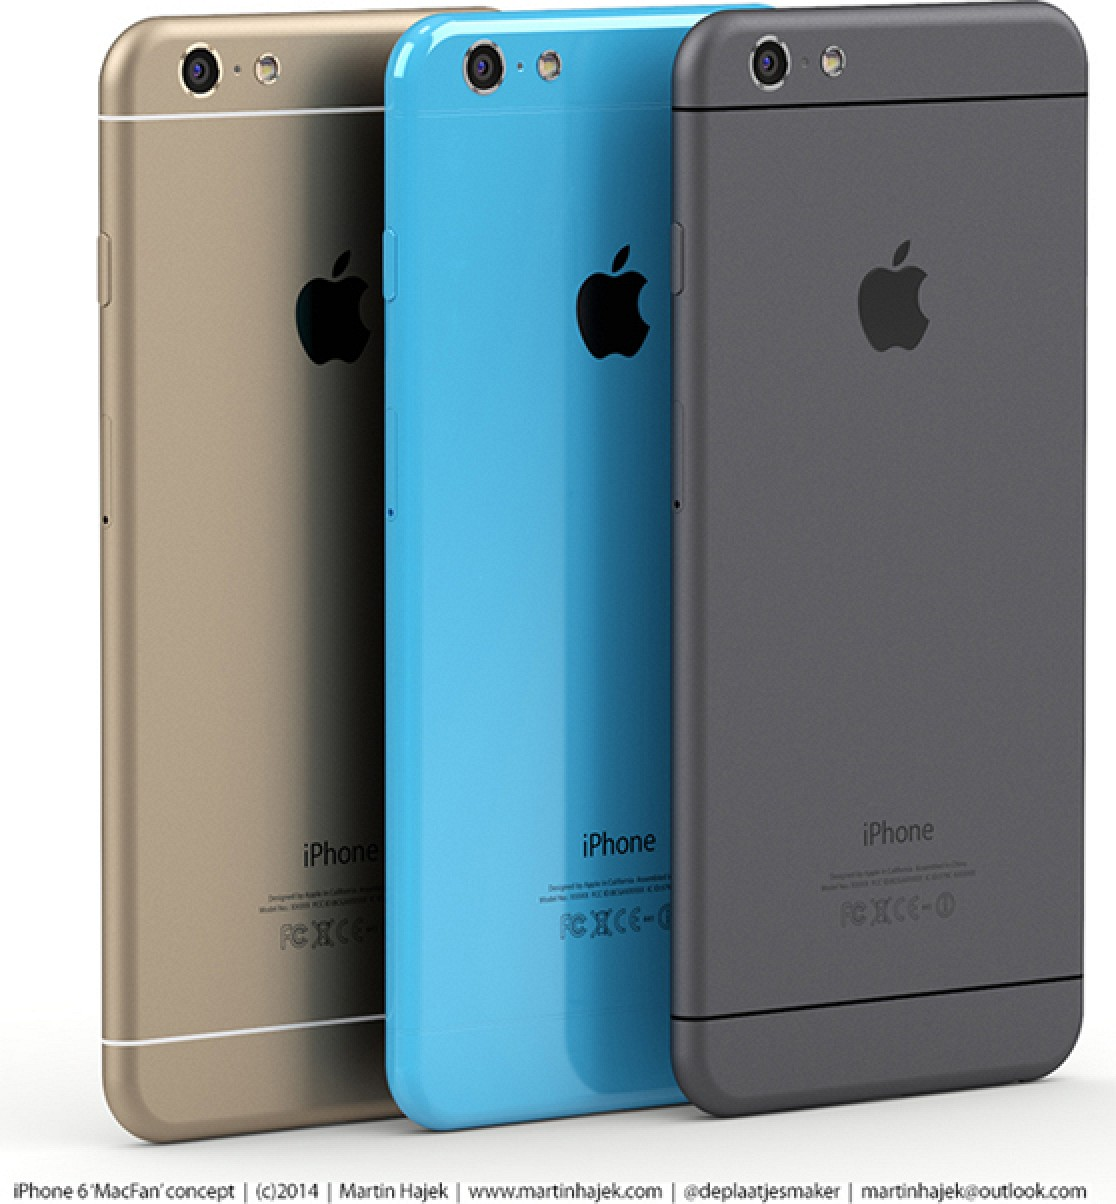 show me iphone 6 new renders show iphone 6s and iphone 6c concepts 1298